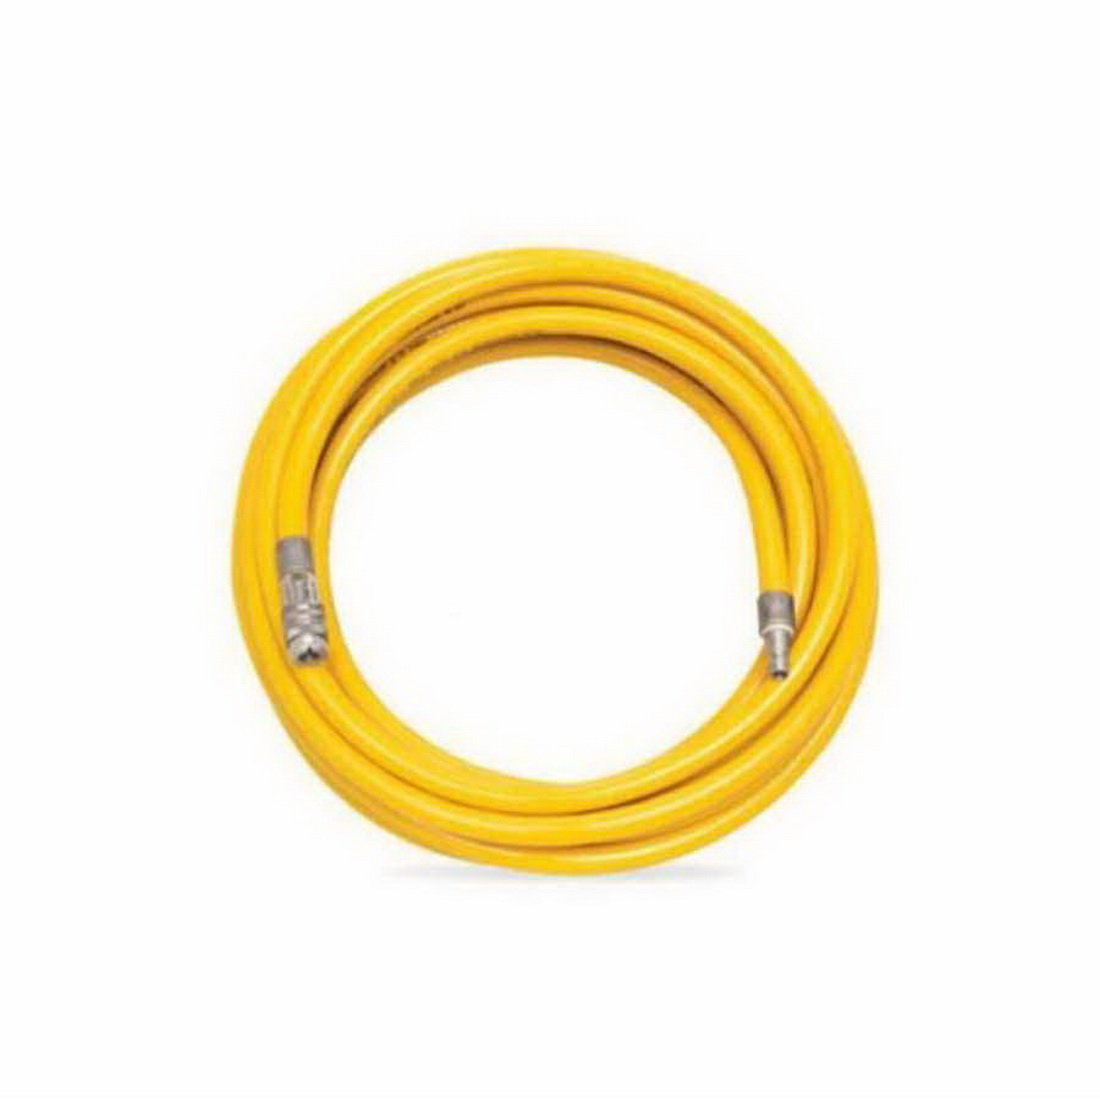 10m PVC Air Hose with Fittings